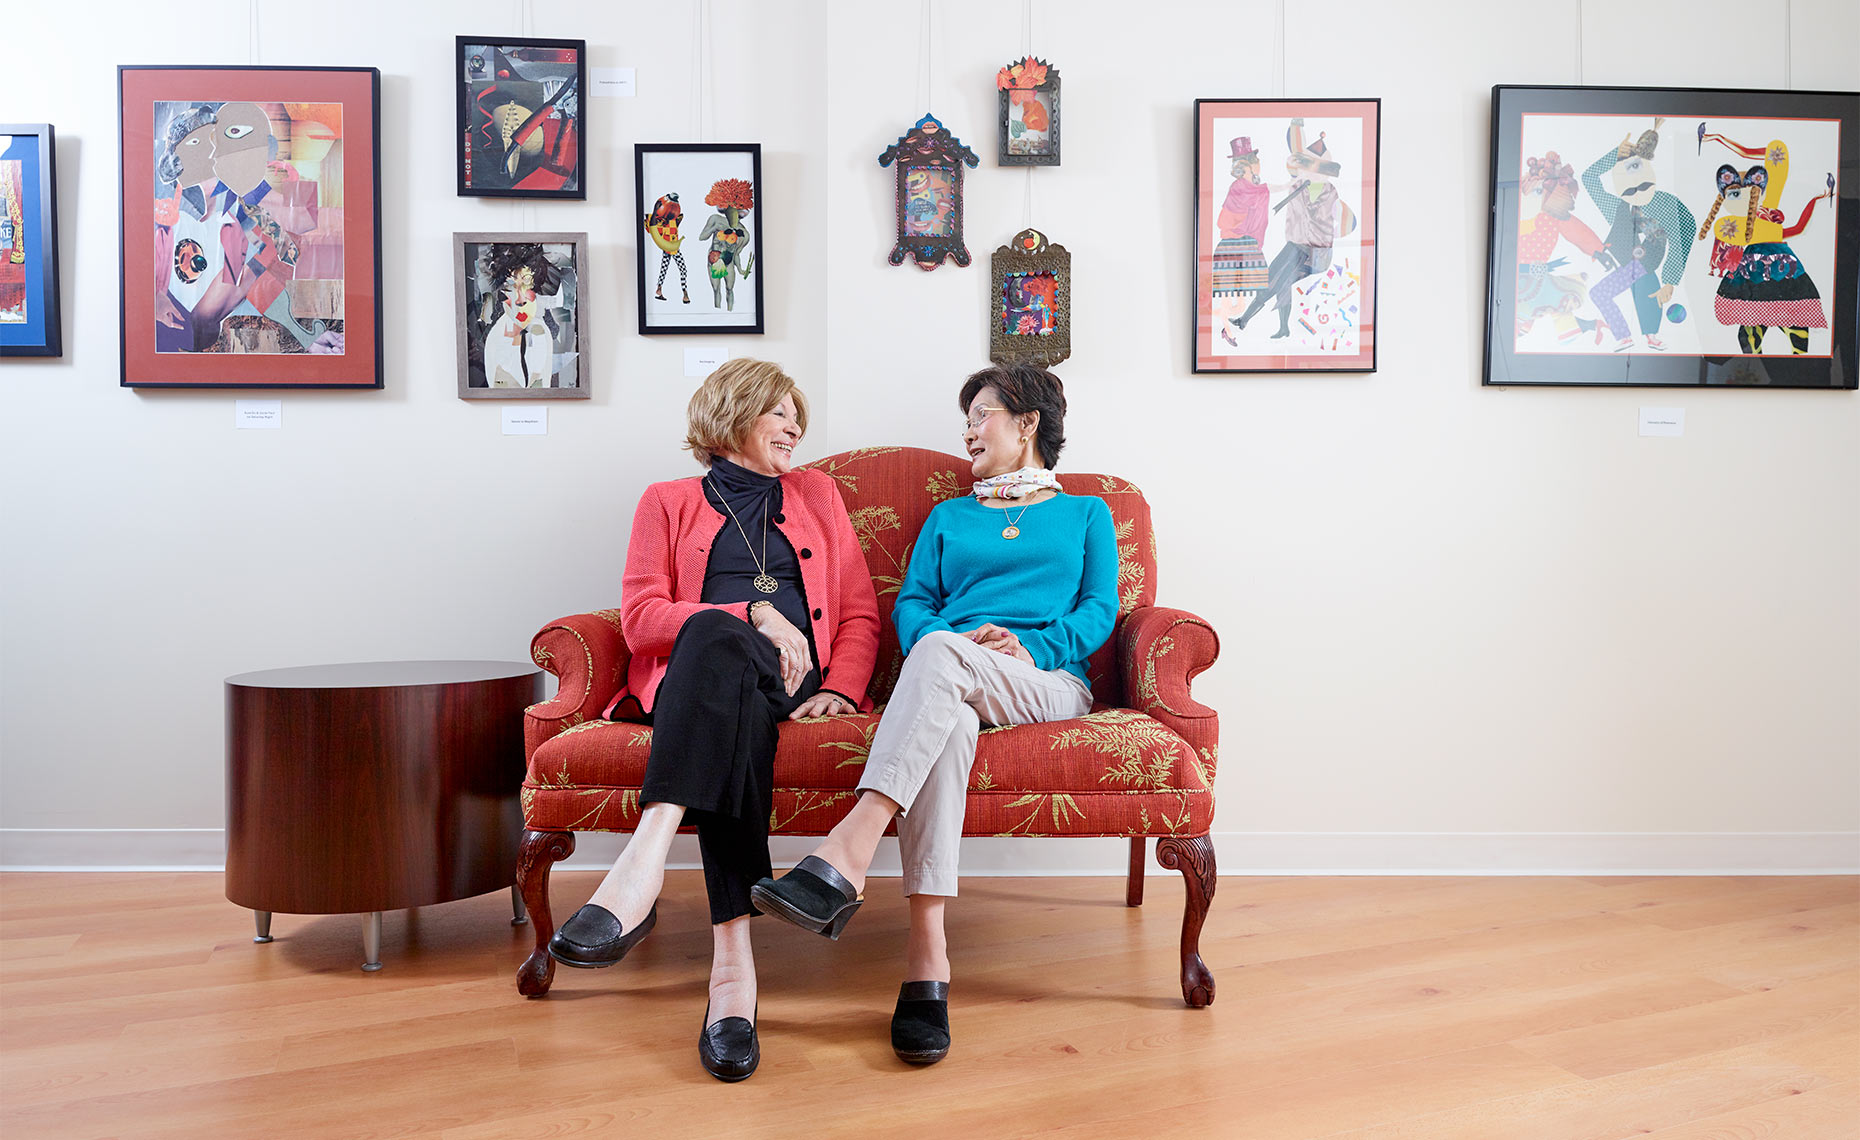 Two Woman Sitting in Art Gallery, Greg Anthony Photographer Art-Space-1-20603-F